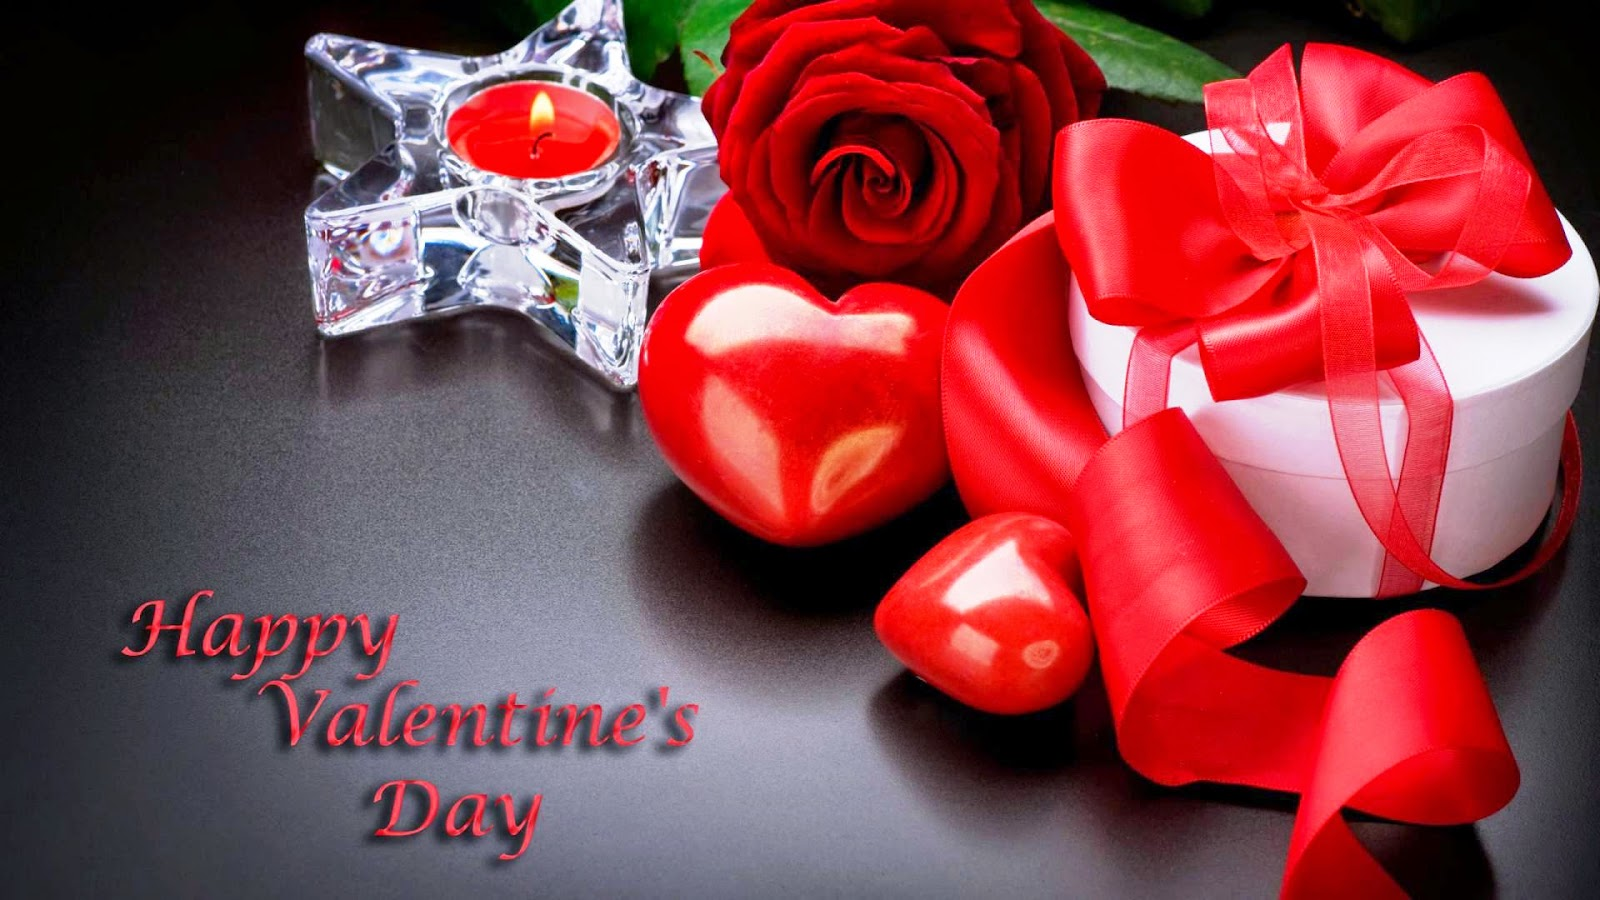 Happy Valentines Day Latest SMS Pics Wallpaper 2015 HD